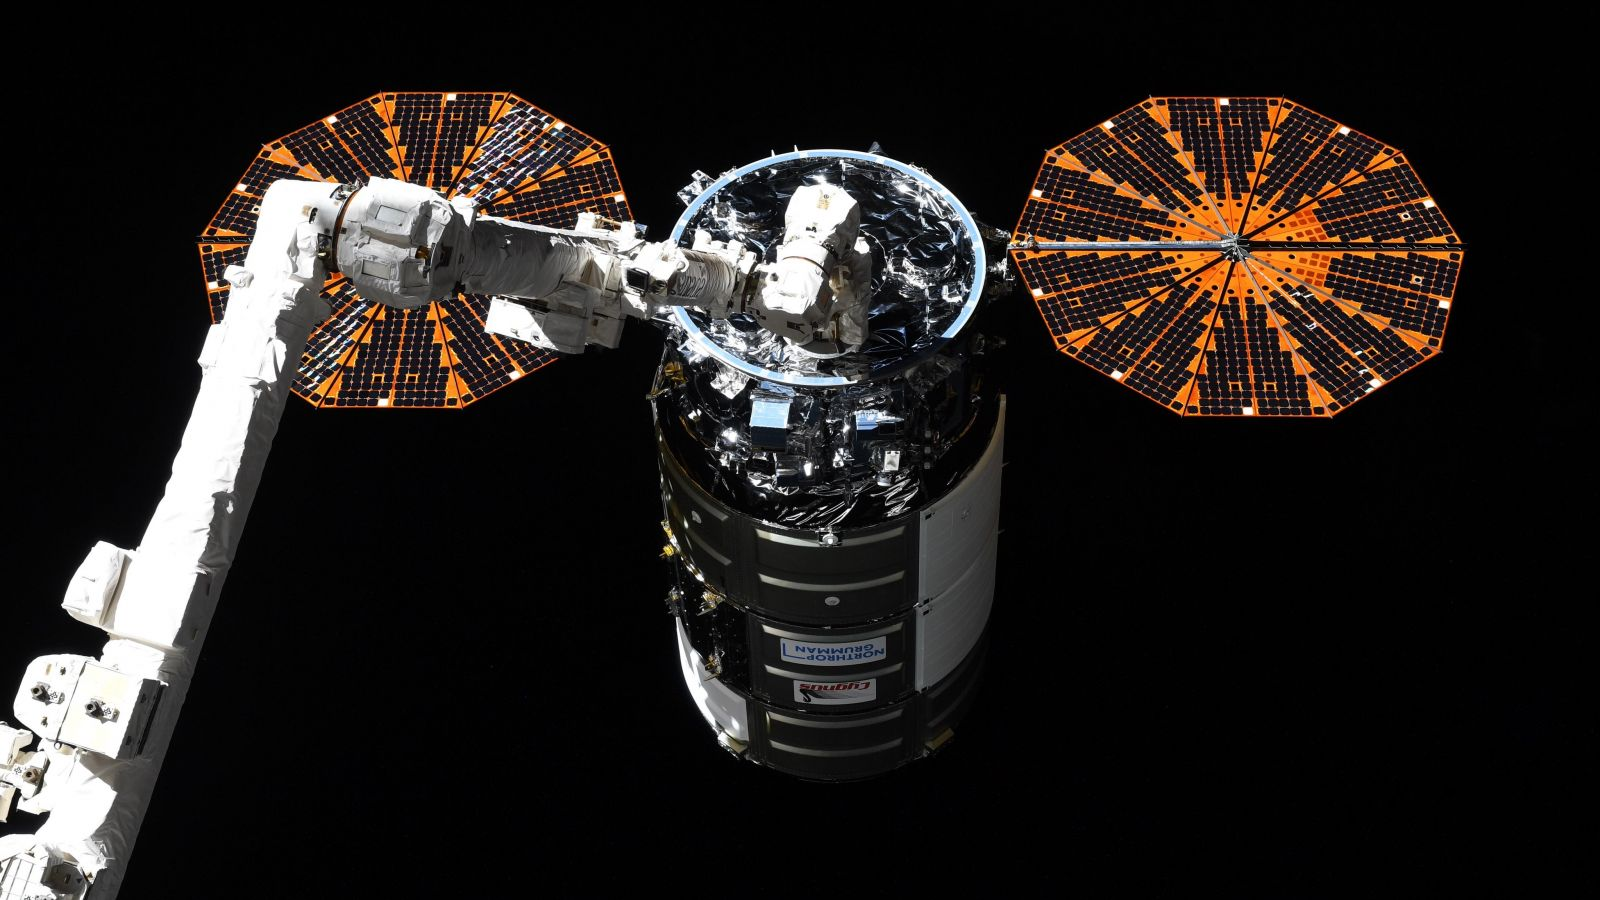 The NG-16 Cygnus spacecraft is captured by the robotic Canadarm2. Credit: Thomas Pesquet / European Space Agency